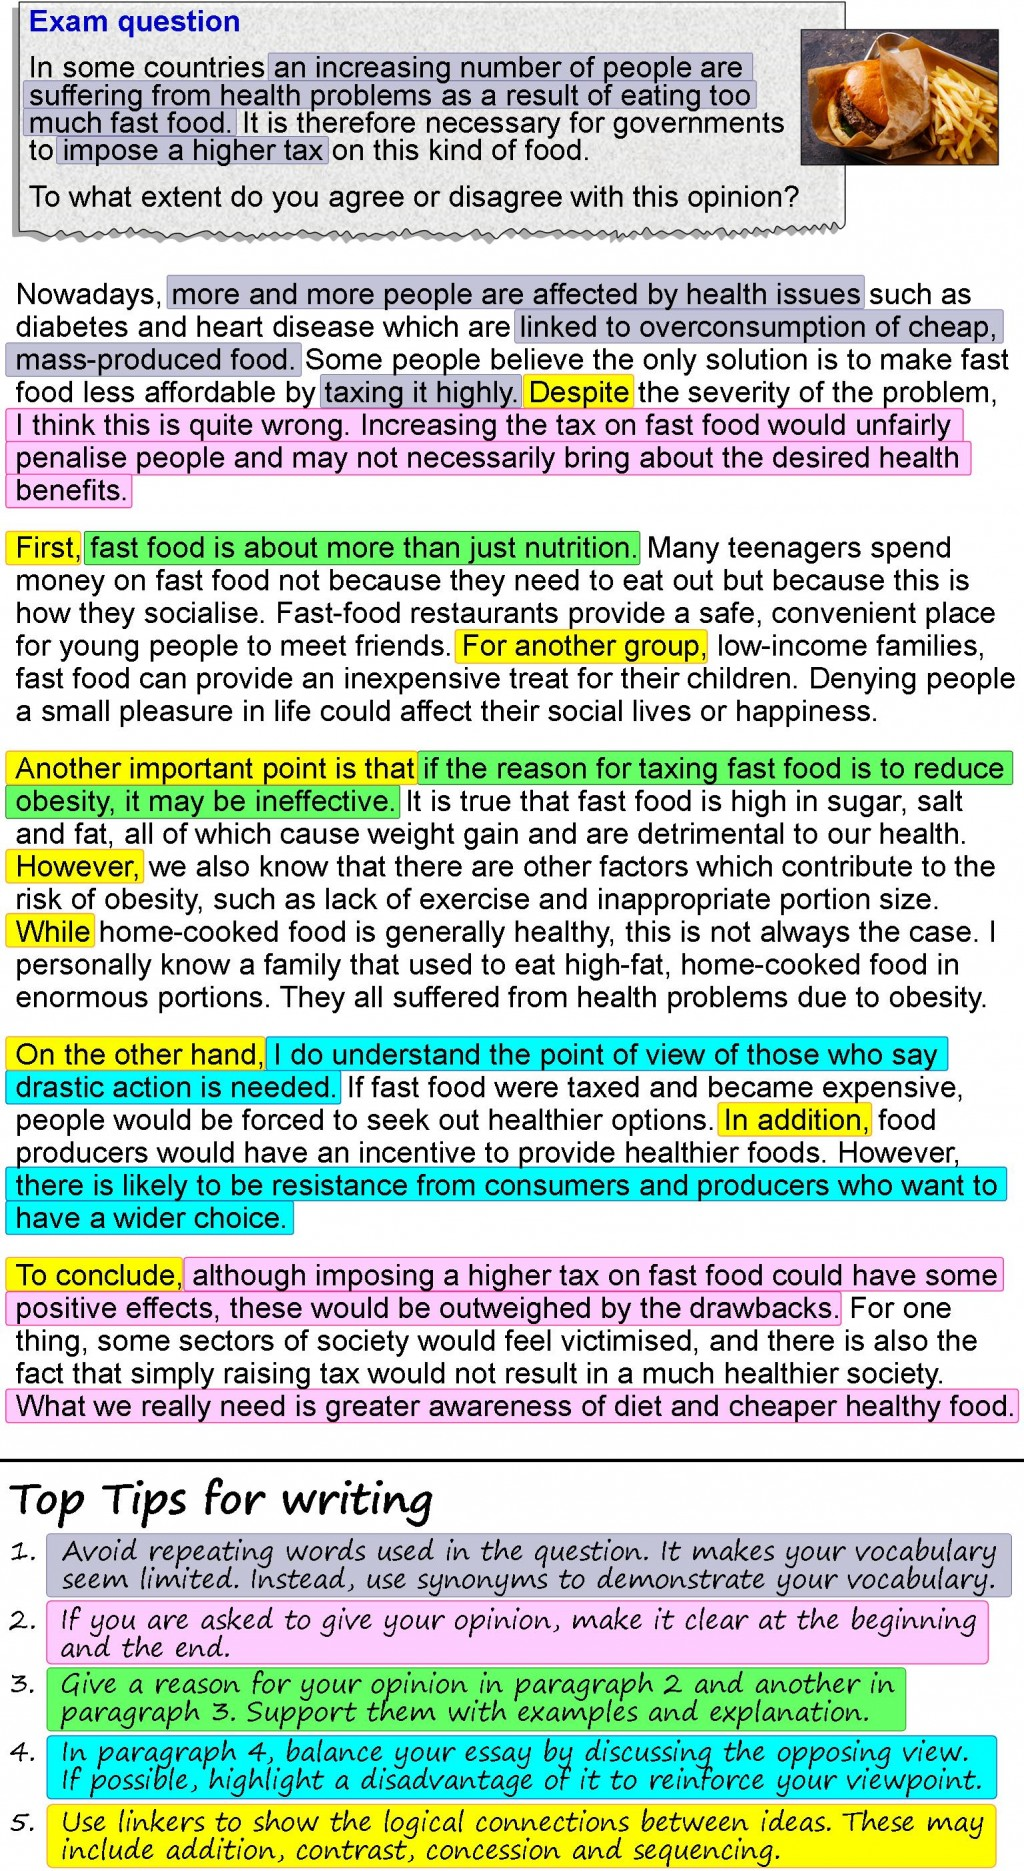 001 Opinion Essay About Fast Food Example An 4 Unbelievable British Council Short Large